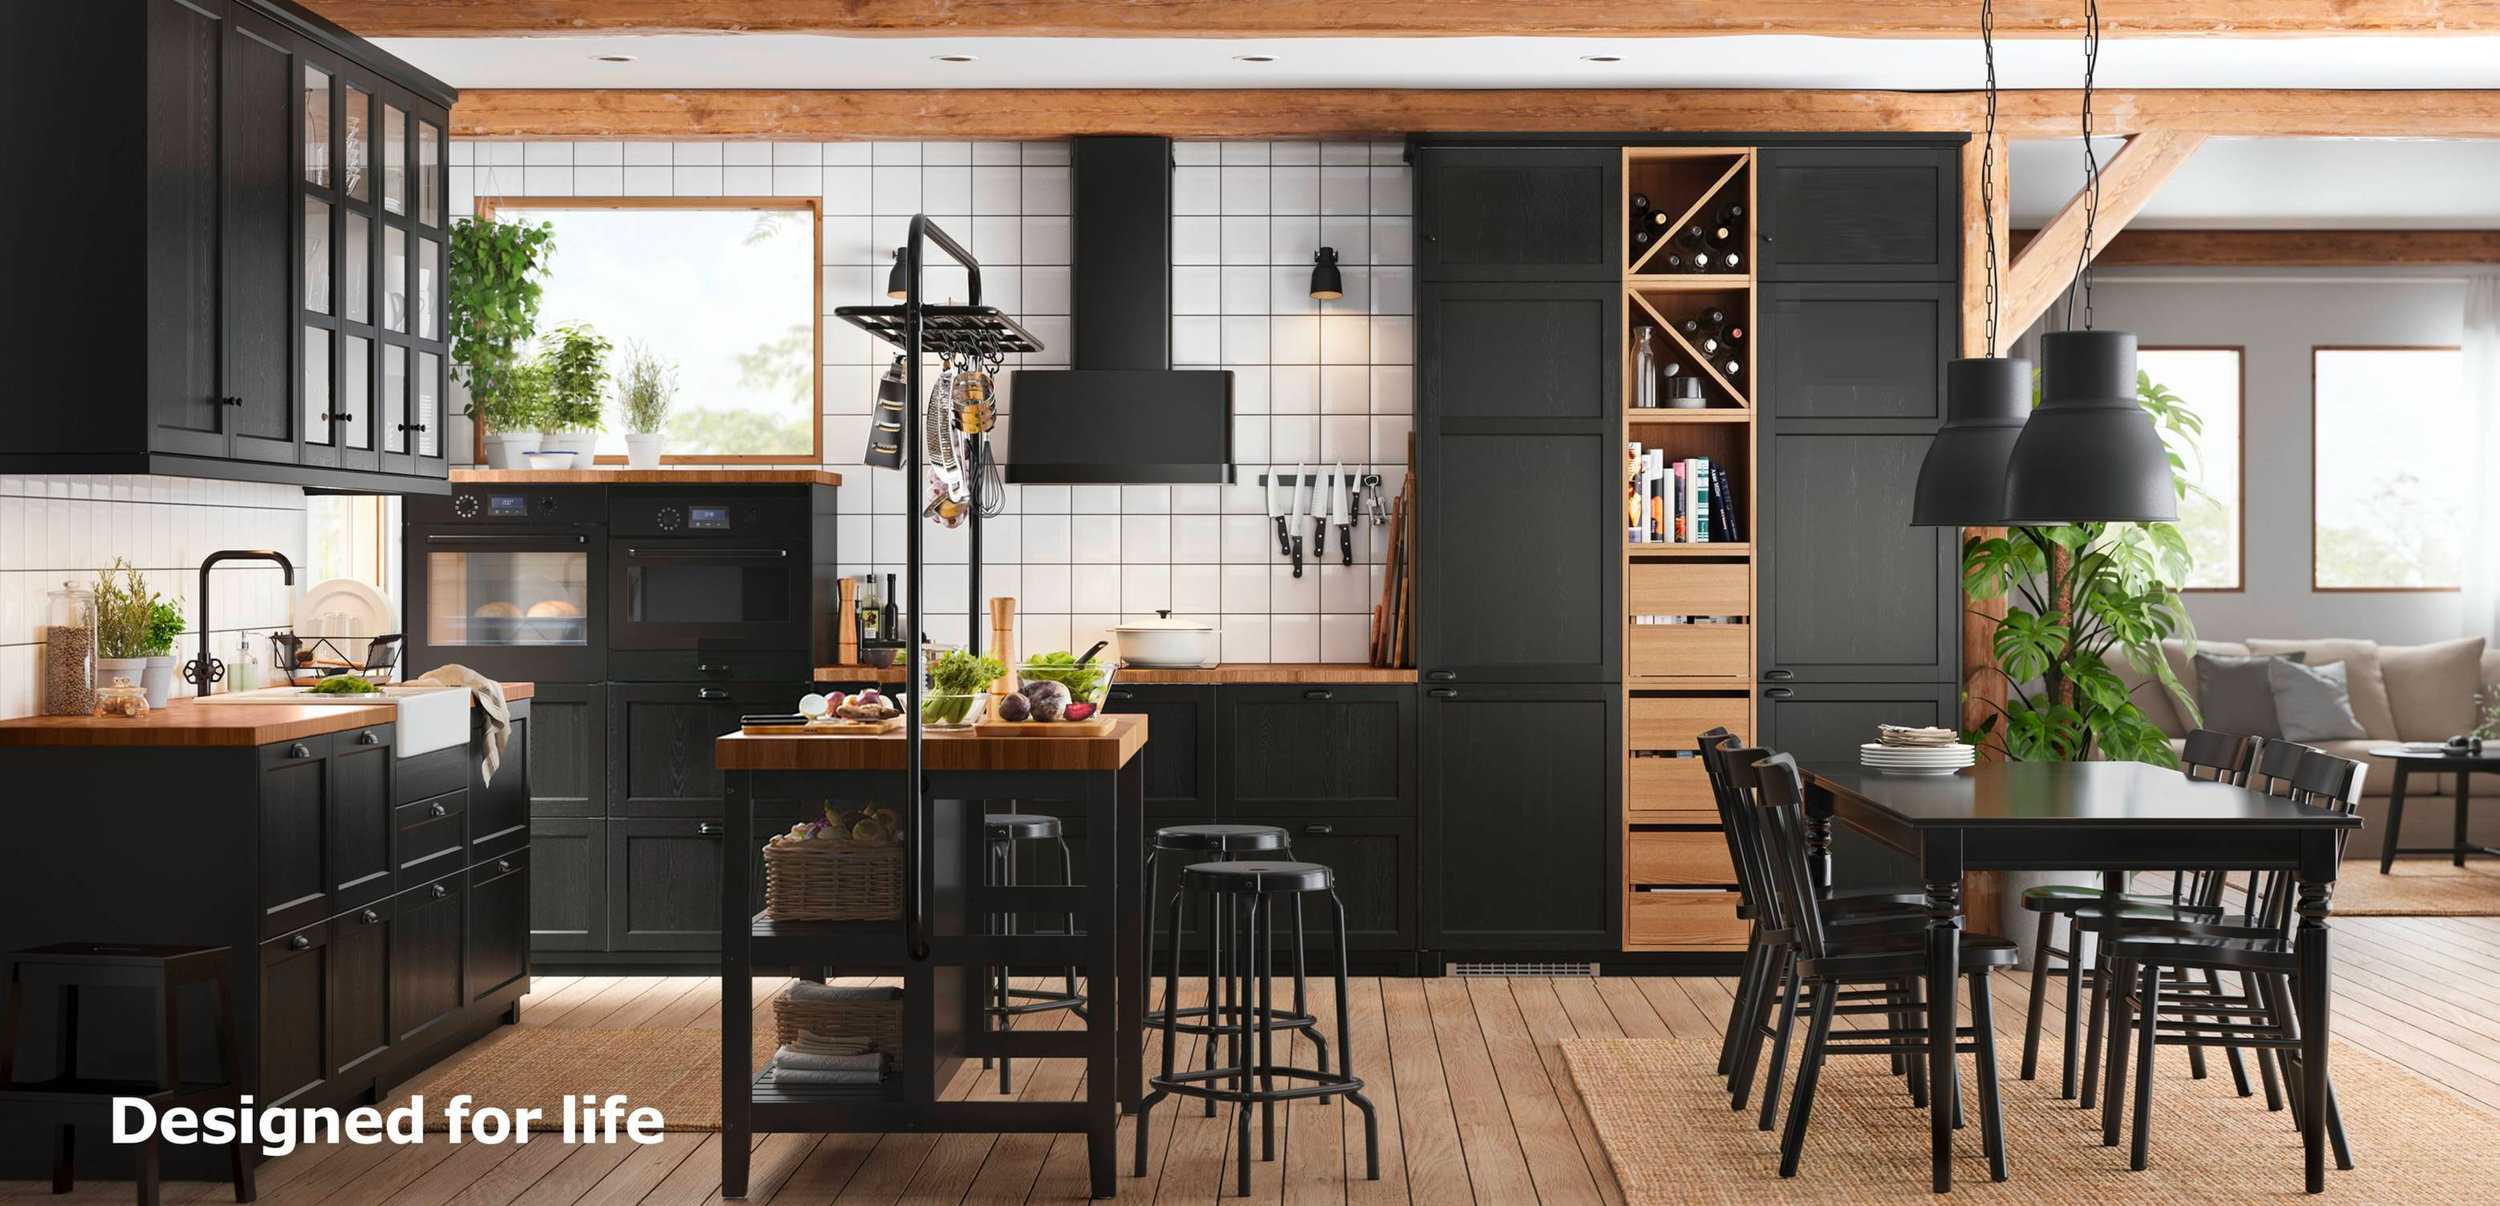 9 Top Picks from the 919 IKEA Catalogue That Kiwis Will Love